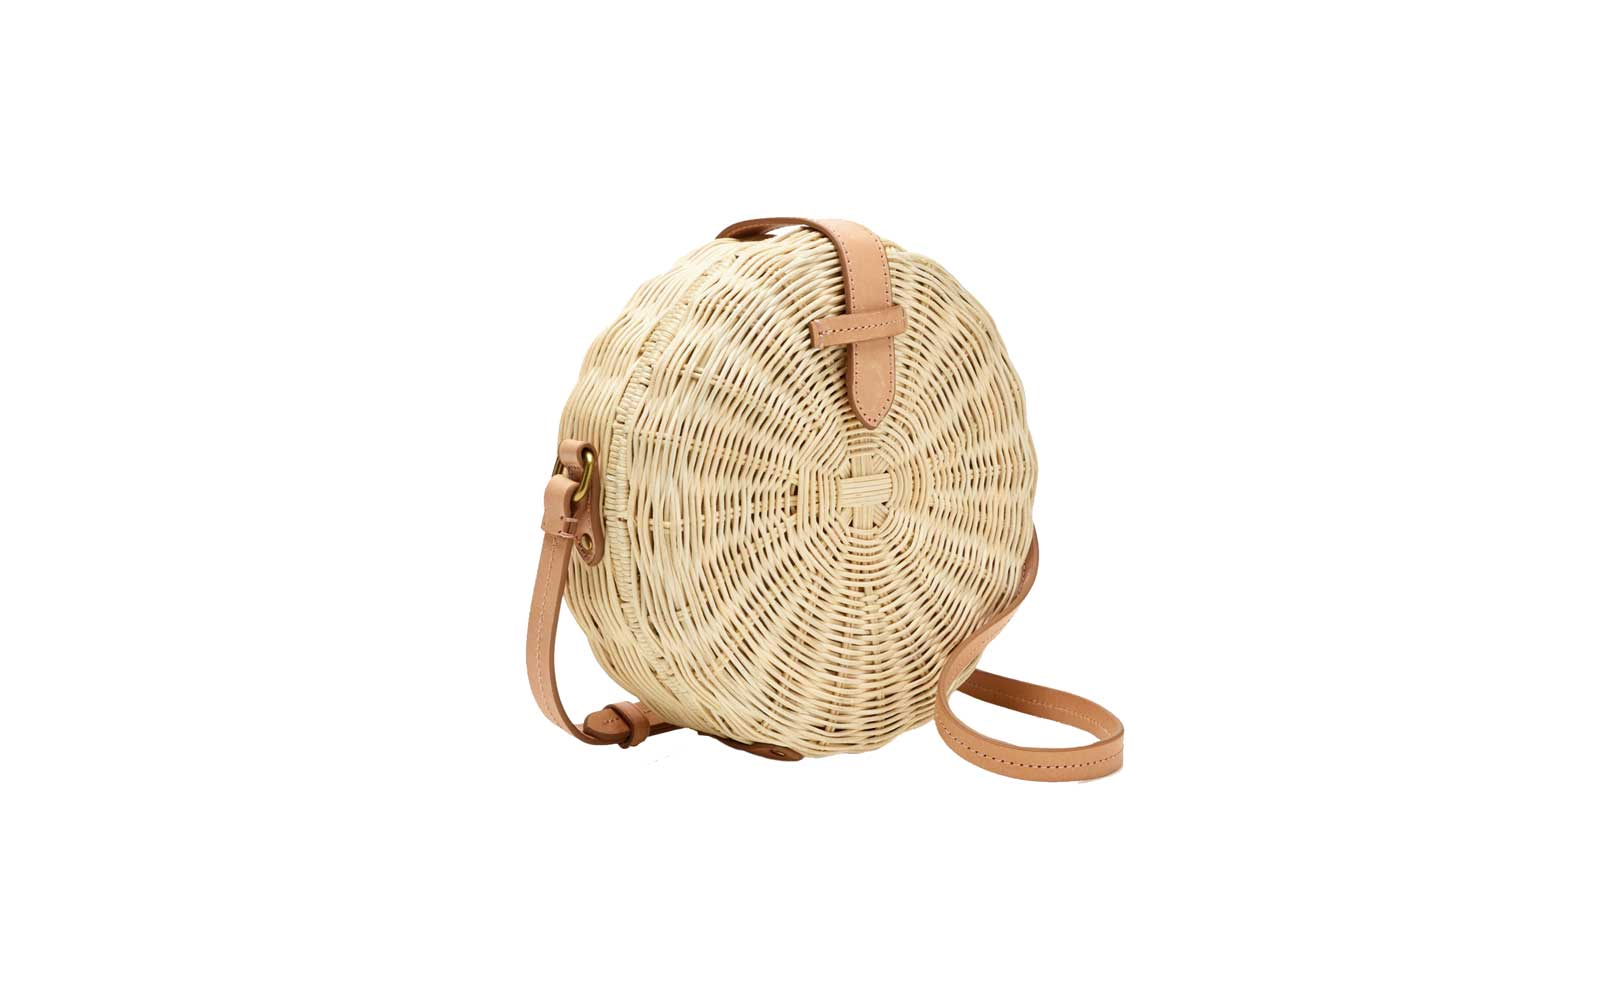 J.Crew Circle Straw Cross-body Bag